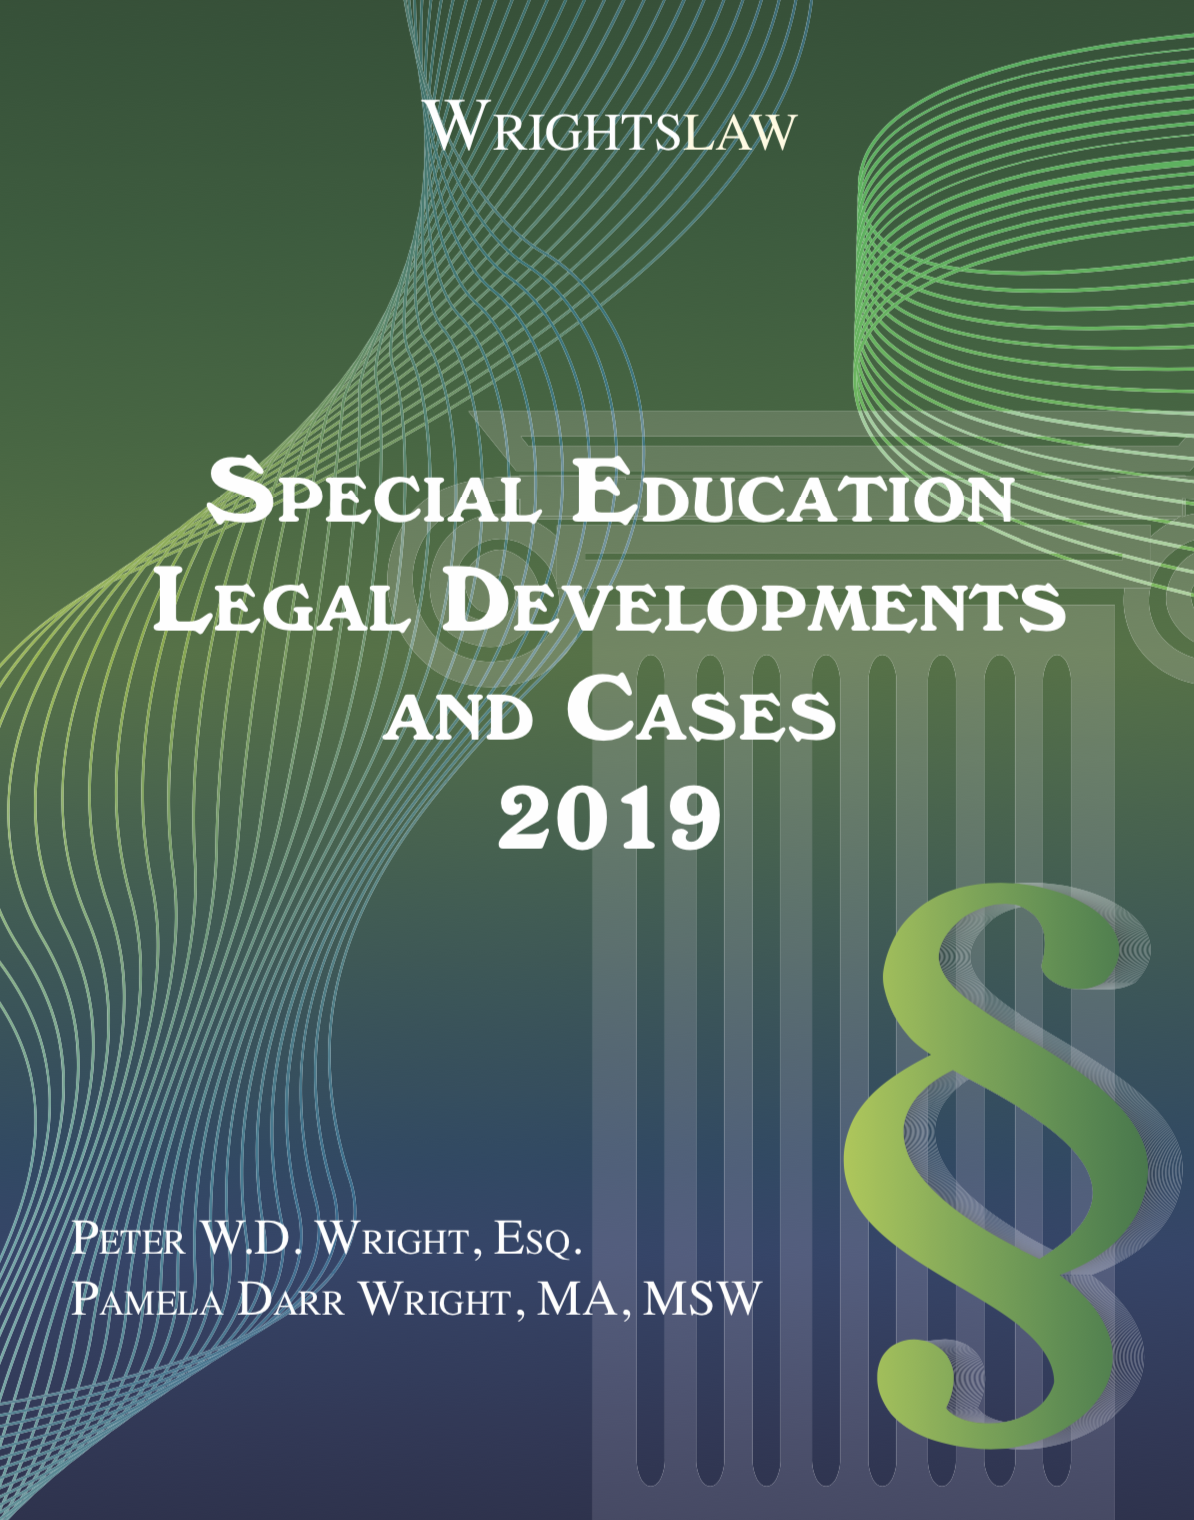 Wrightslaw: Special Education Legal Developments and Cases 2019